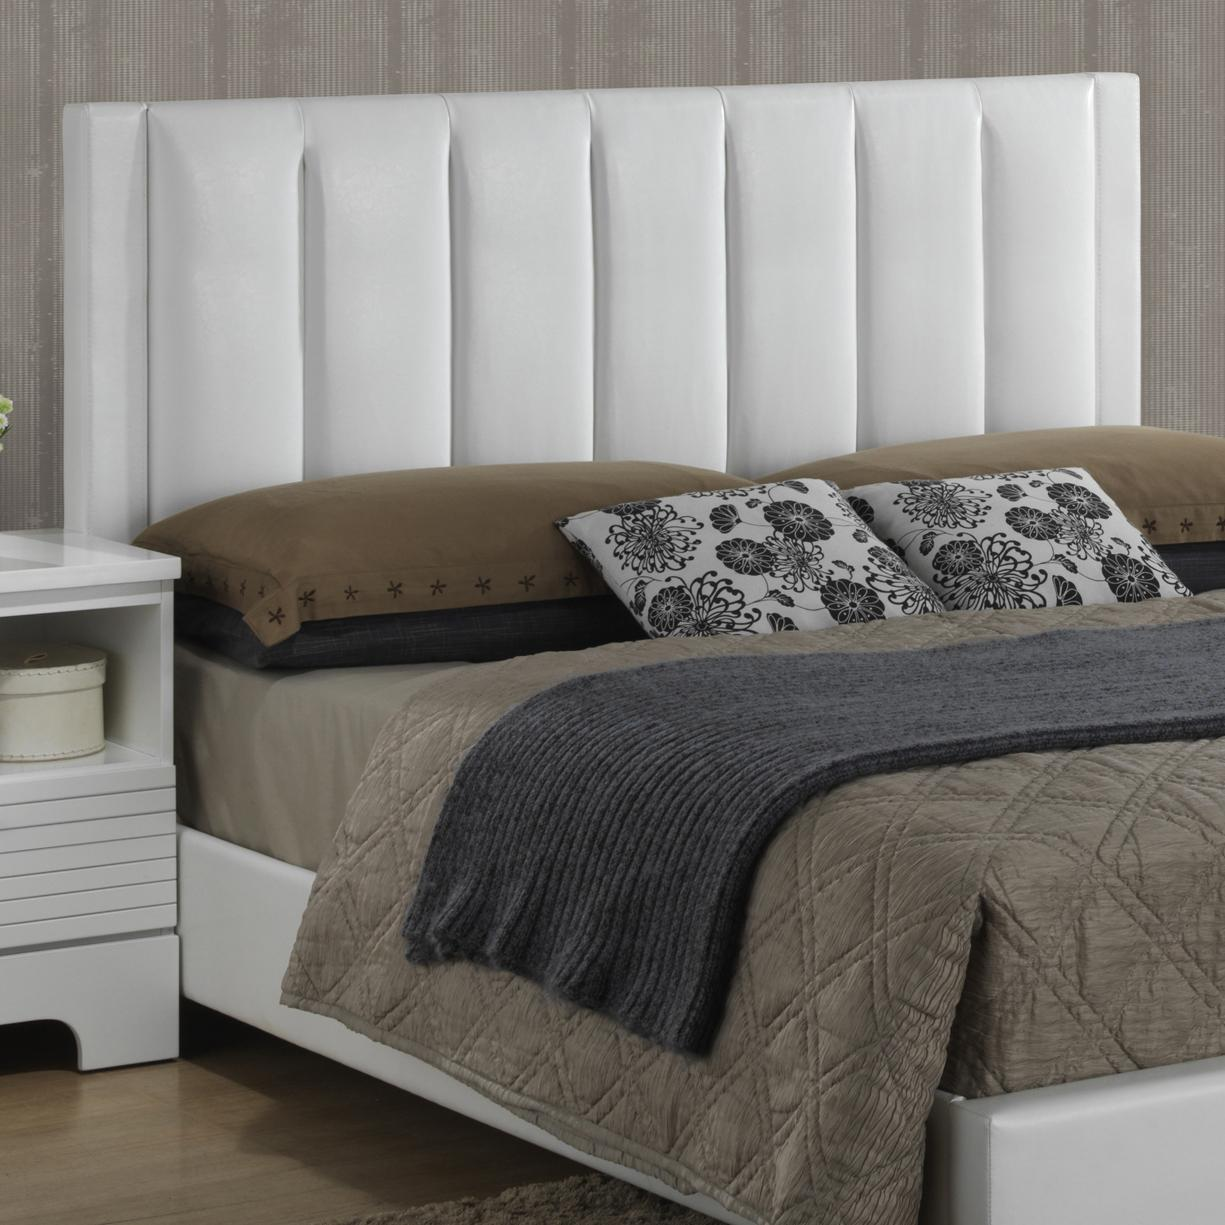 Lifestyle Sami King Headboard - Item Number: C3333A-KUO-WUXX